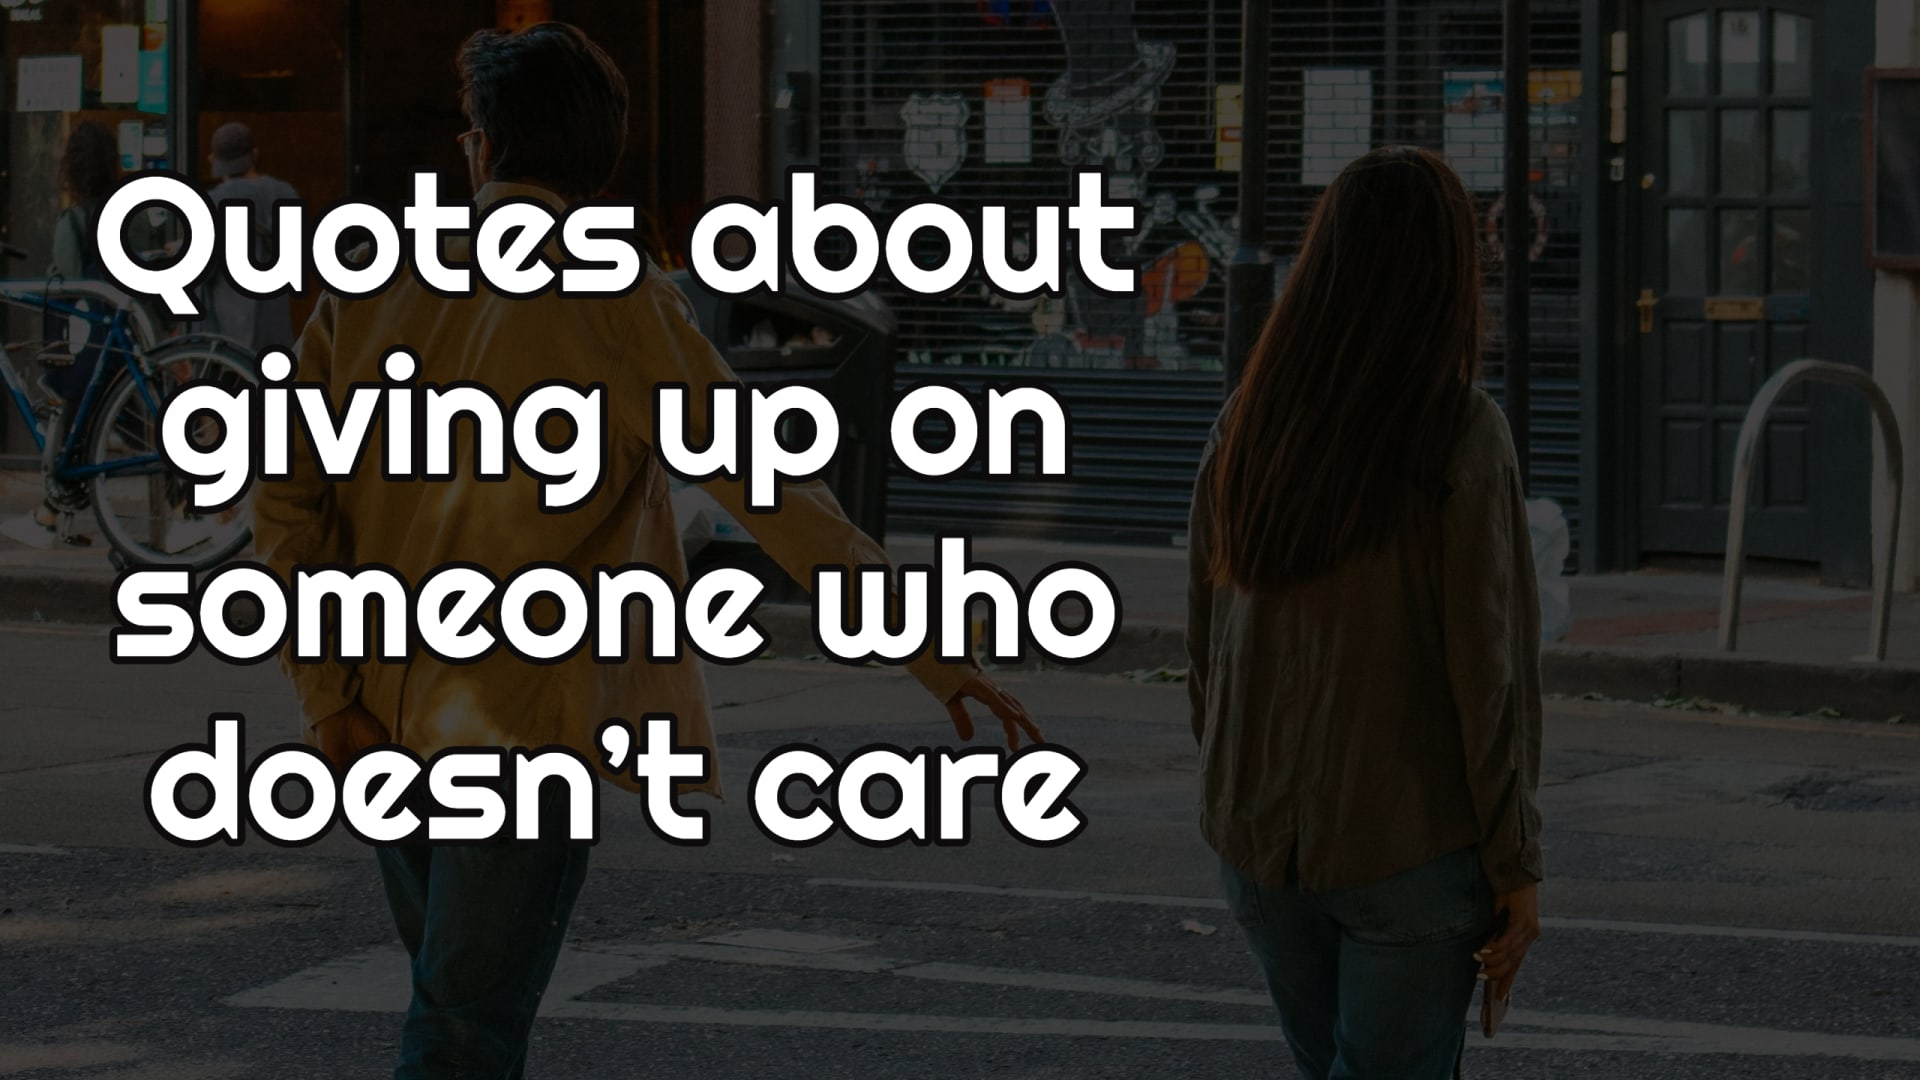 Quotes about giving up on someone who doesn't care